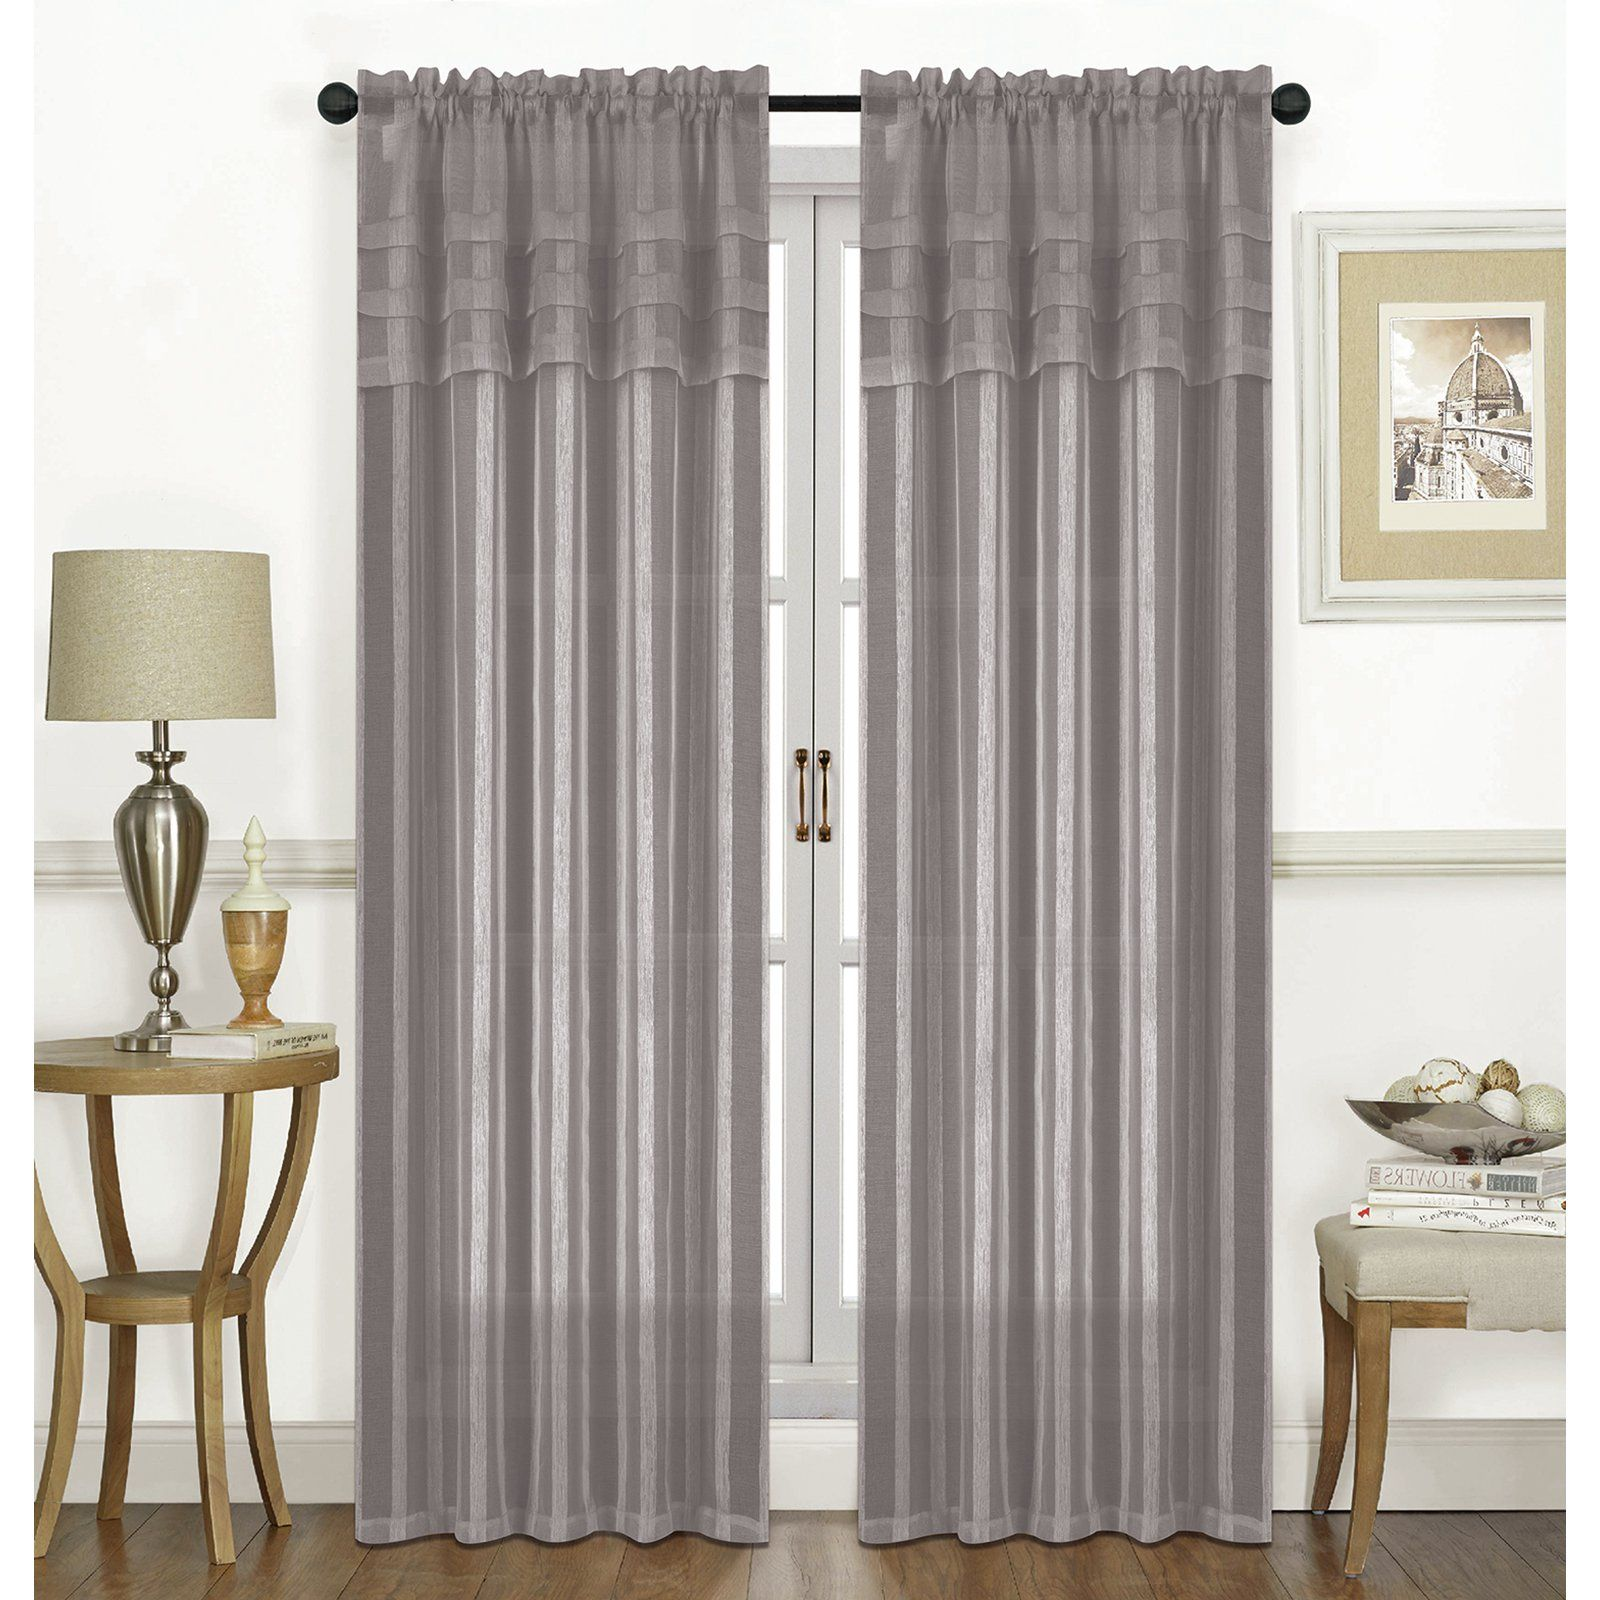 Rt Designers Collection Candice Textured Rod Pocket Curtain Panel